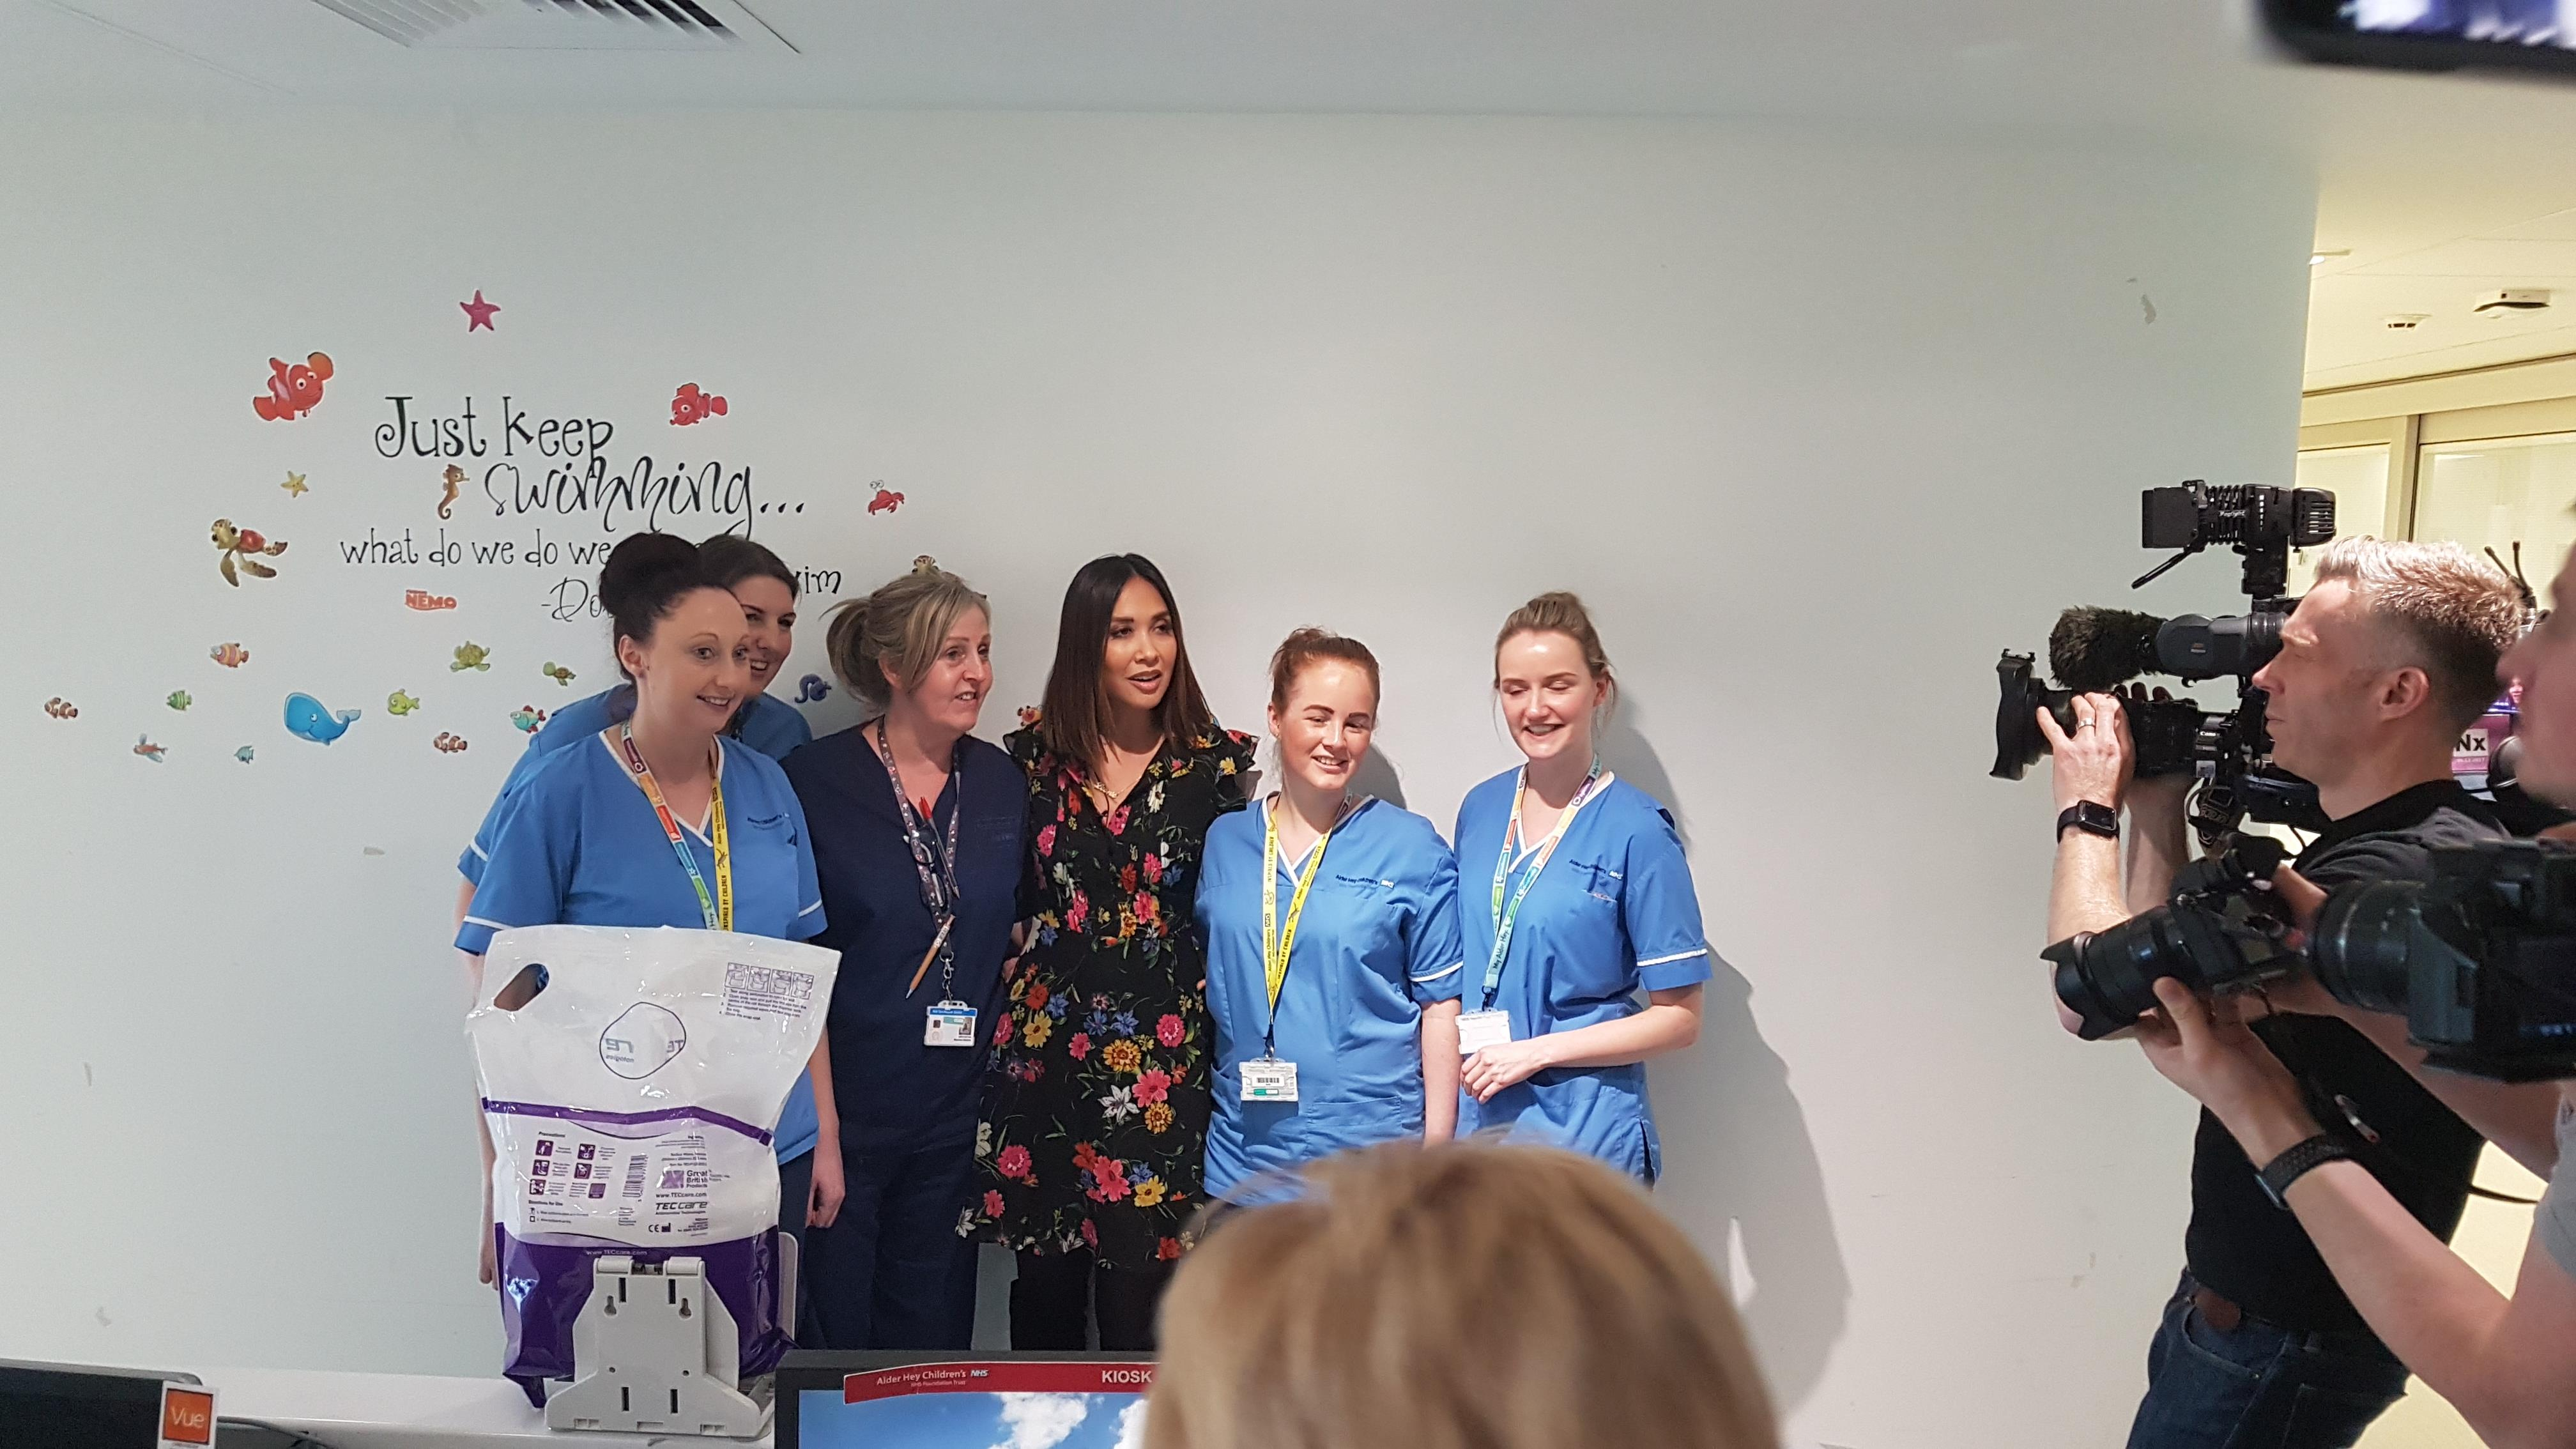 Myleene Klass' visit wasn't just Hear'say